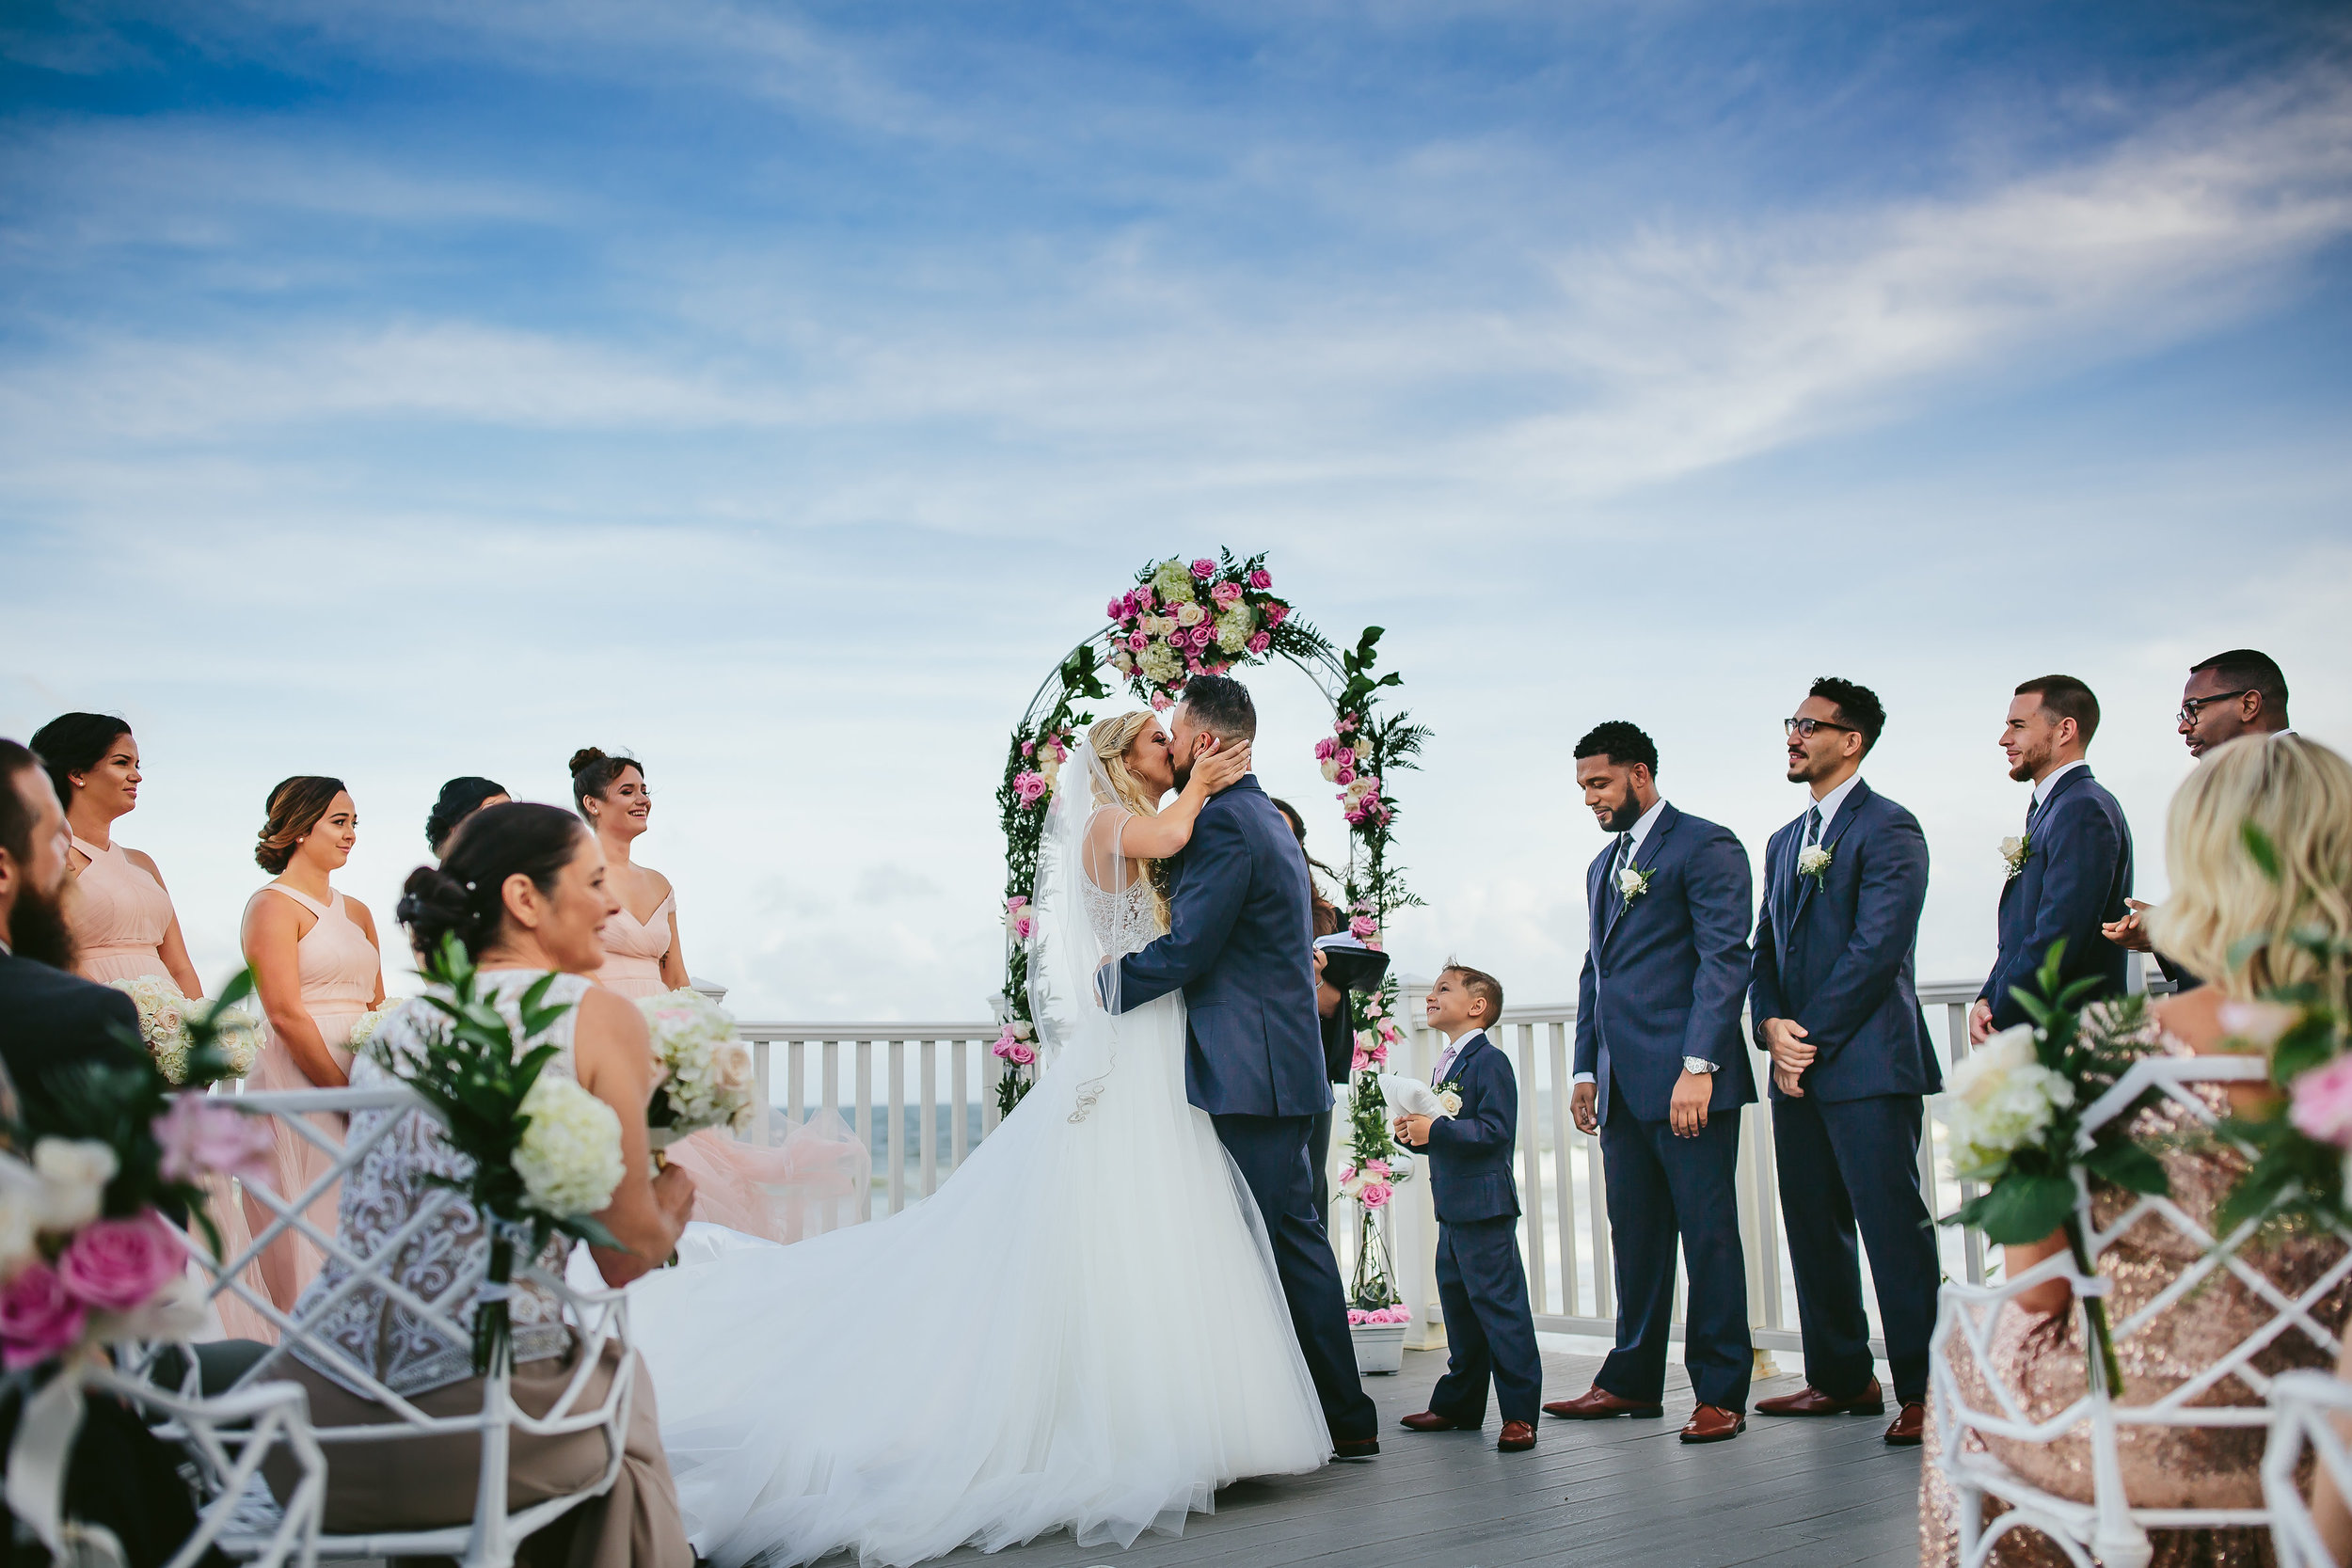 First Kiss Bride and Groom at the Hillsboro Lighthouse. Wedding Photography by Tiny House Photo.